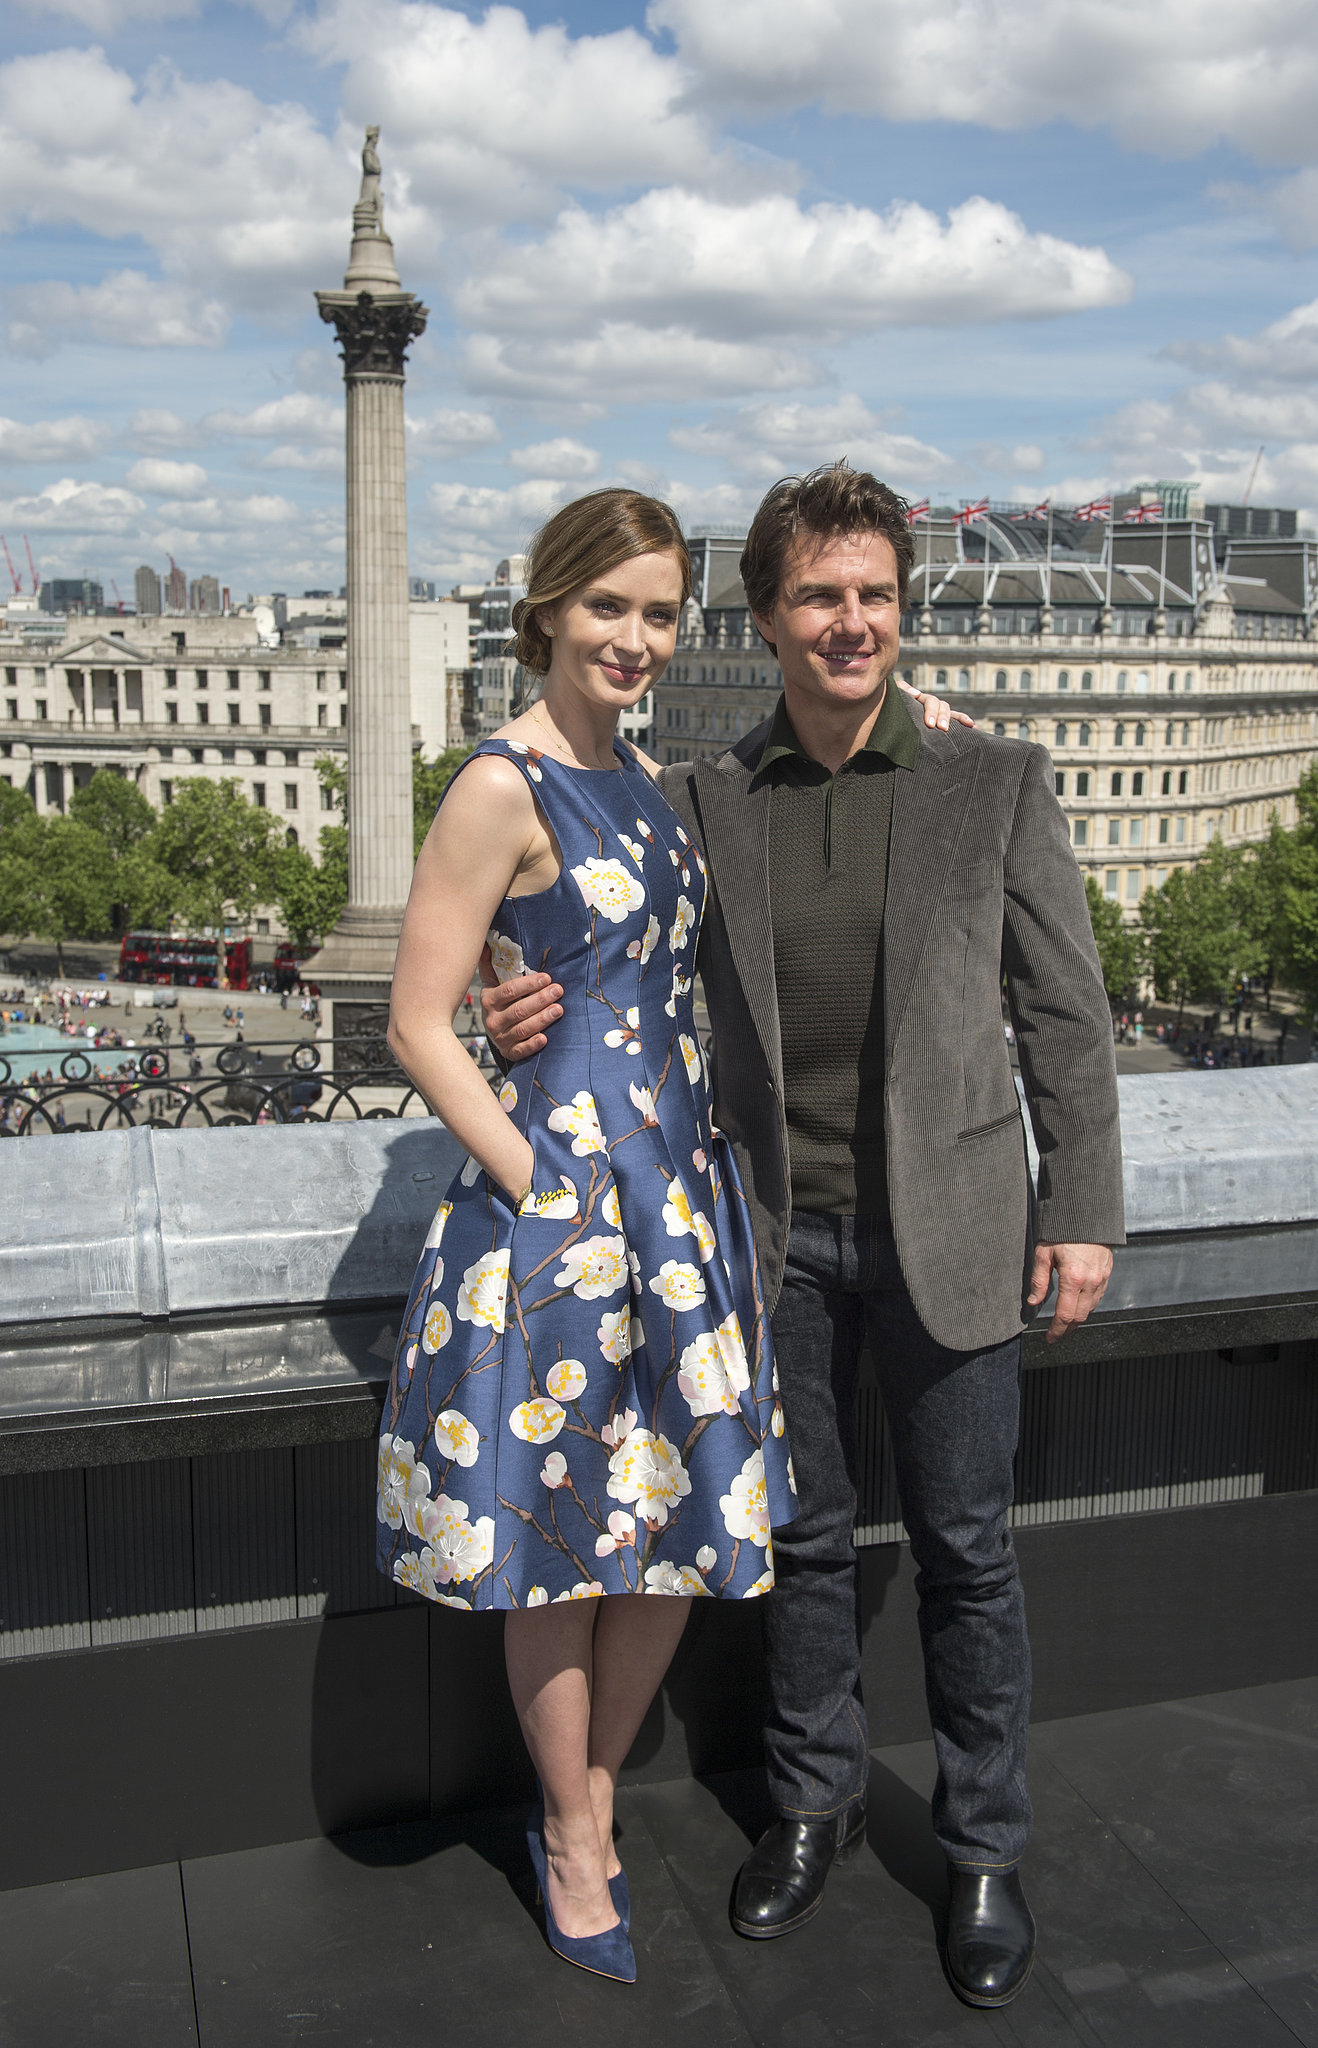 Tom Cruise and Emily Blunt were all smiles during the Edge of Tomorrow photocall in London.